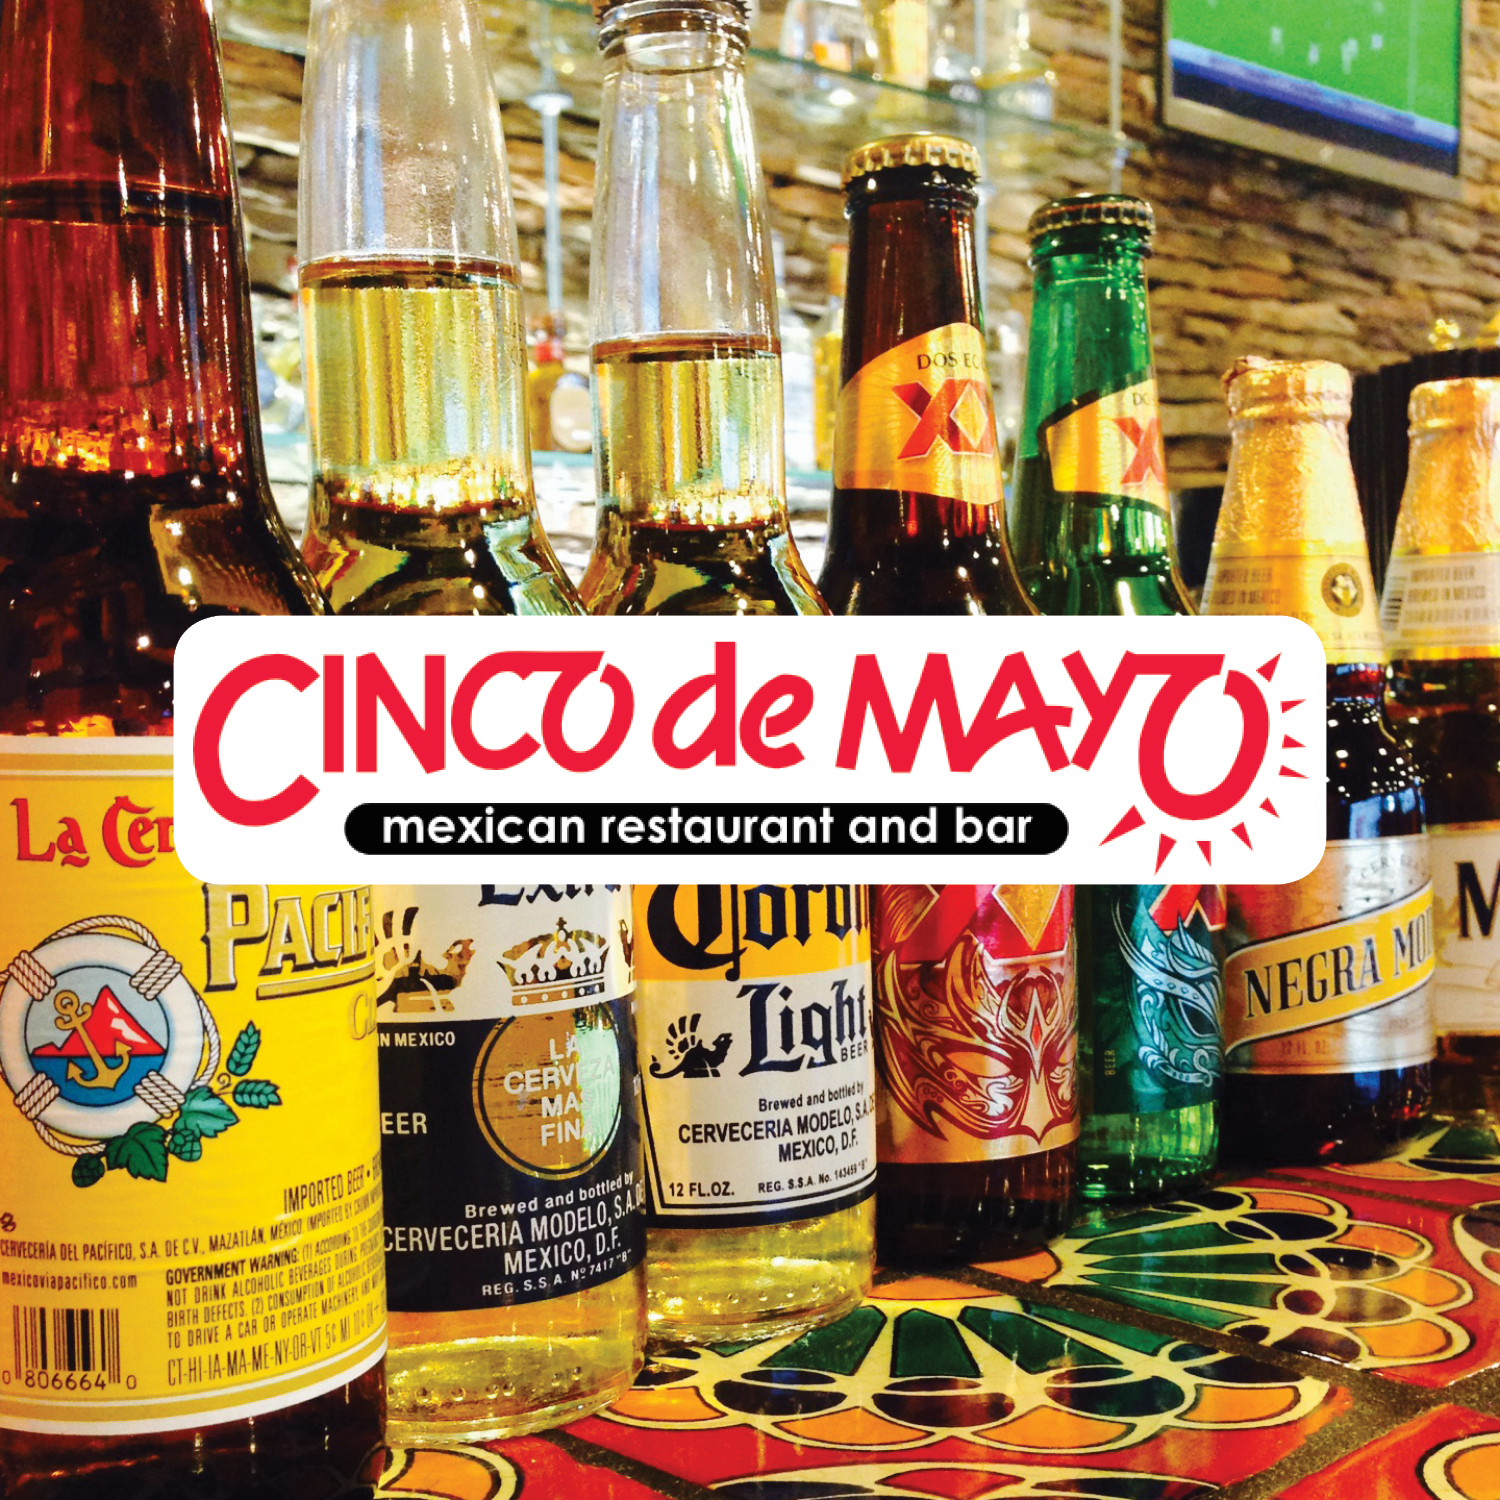 Here at Cinco De Mayo we offer fresh mexican food with a full service tequila bar to help you relax and enjoy your meal! We also offer freshly made gaucamole right at your table upon request!    -Click image to view current offers-  .